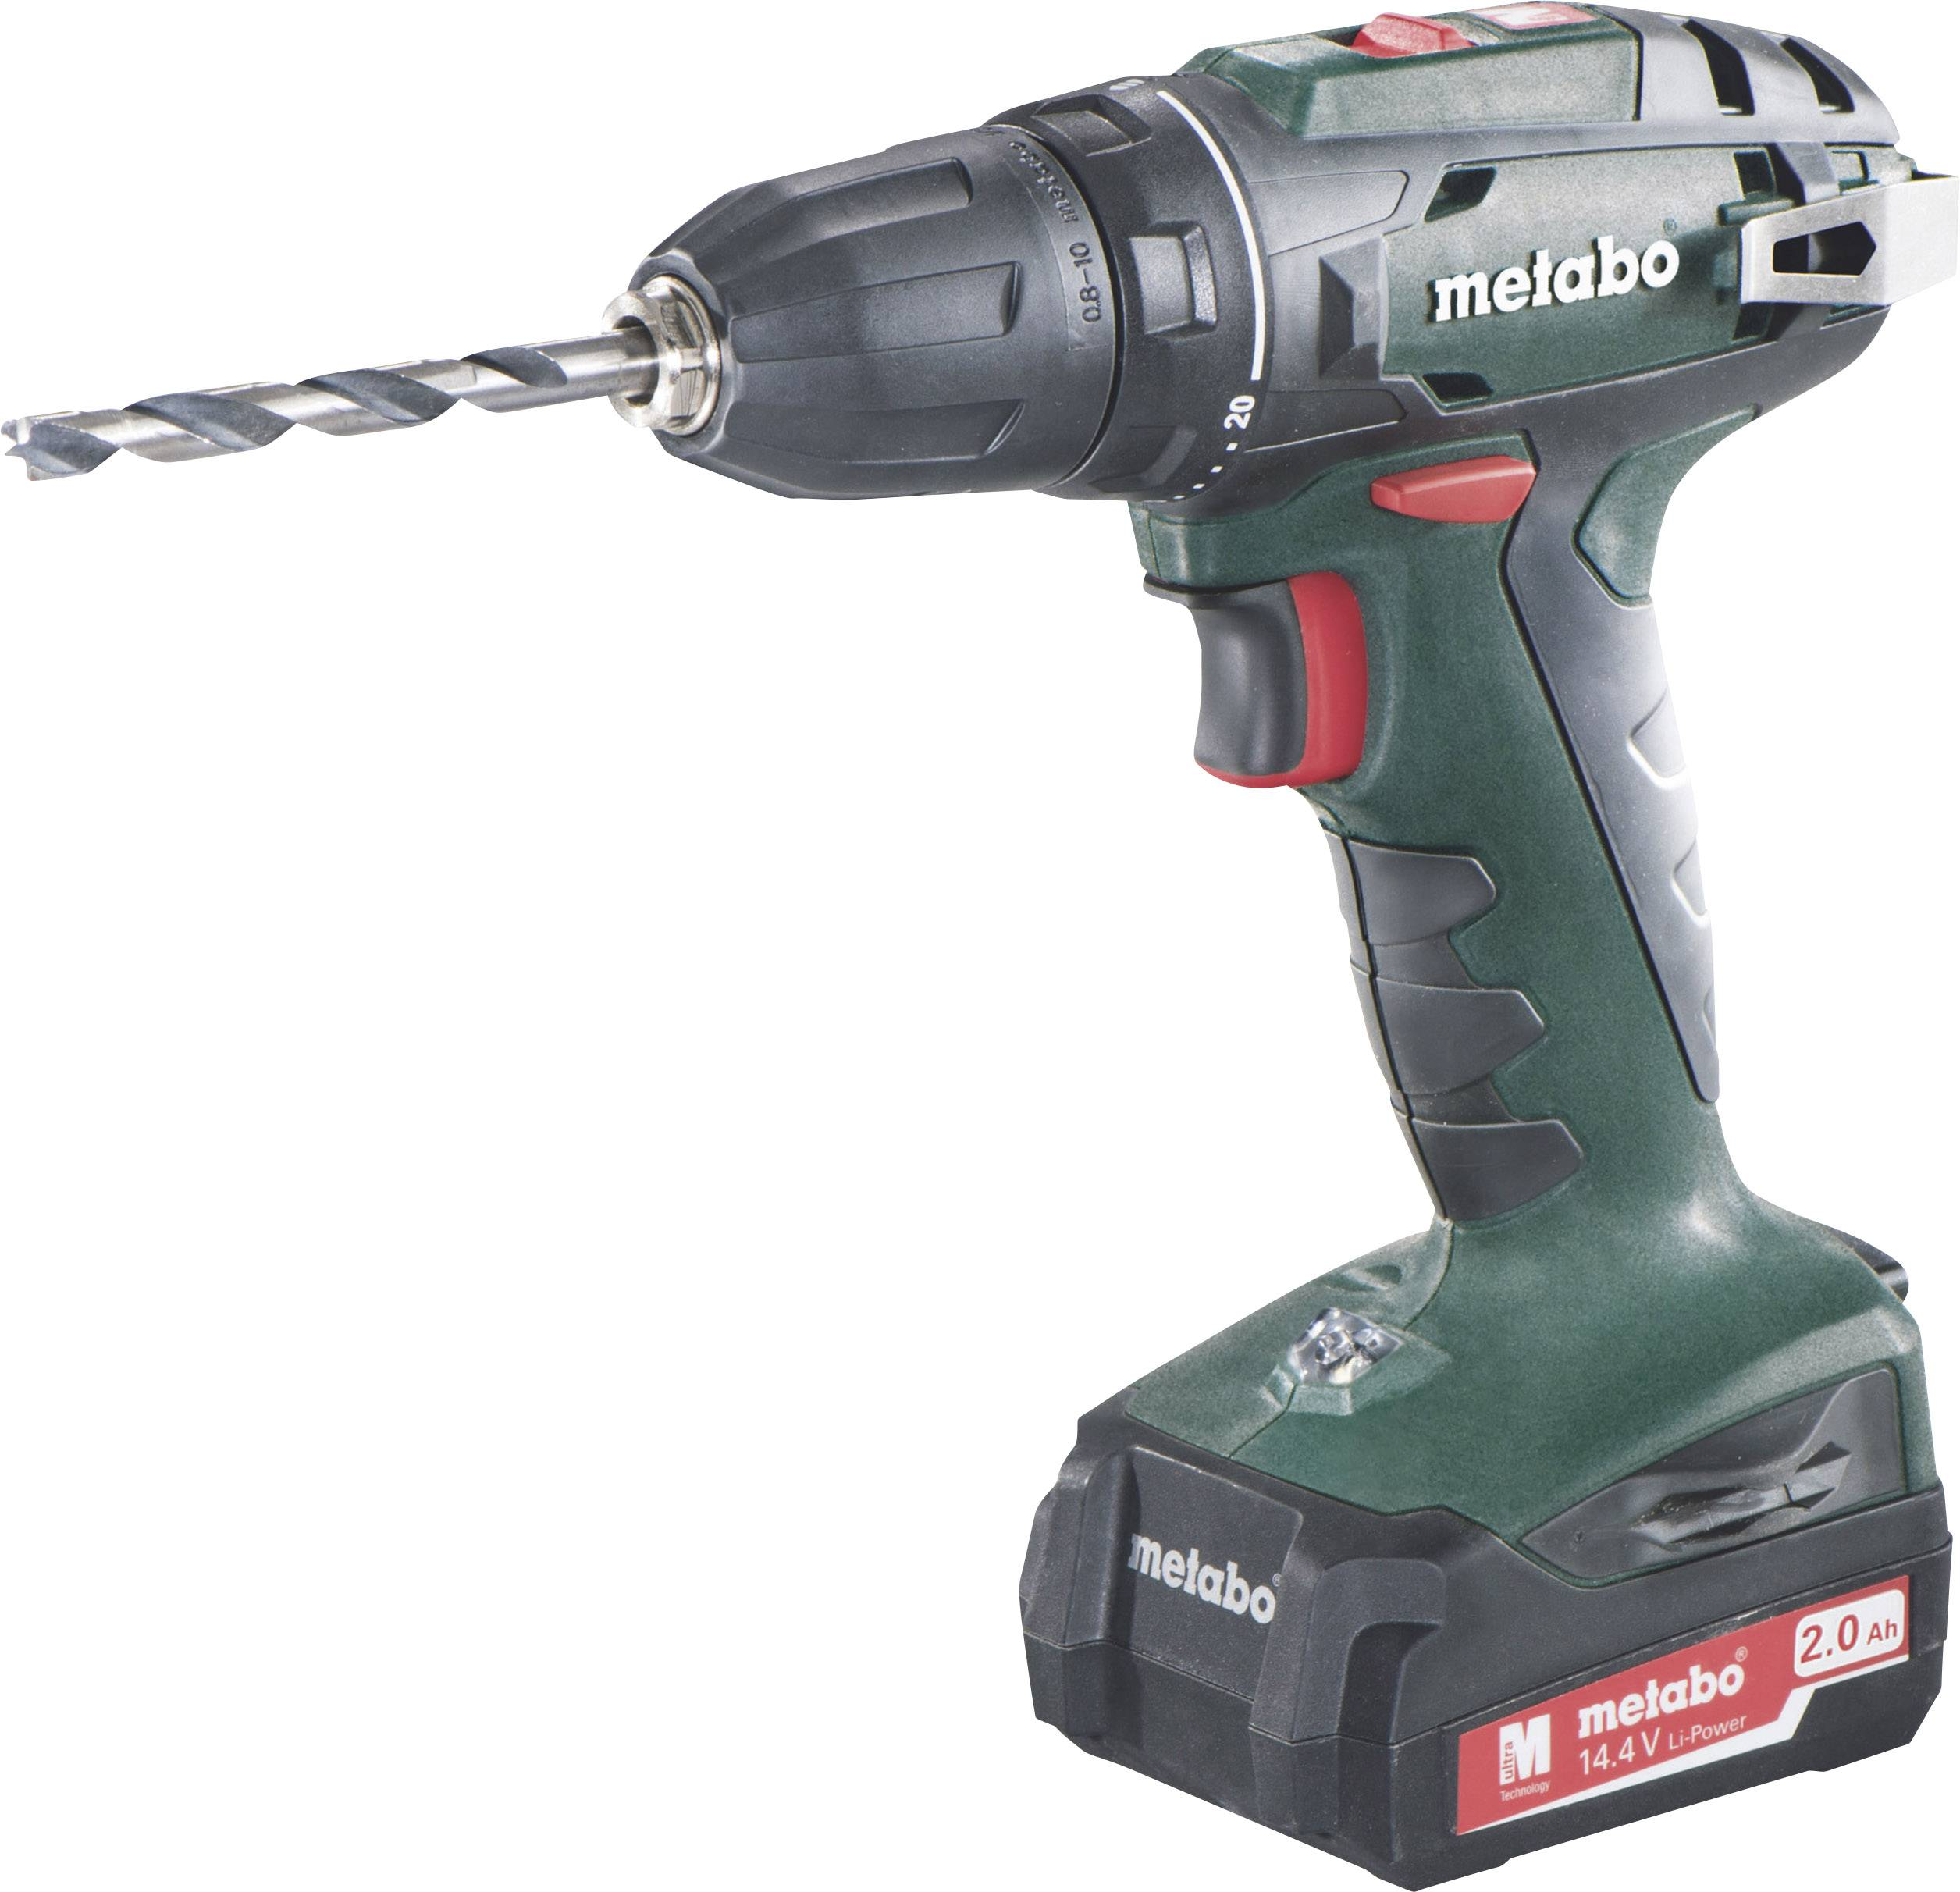 Beste Accuschroefboormachine Accuschroefboormachine Metabo Bs 14 4 Incl Accu Incl Koffer 14 4 V 2 Ah Li Ion